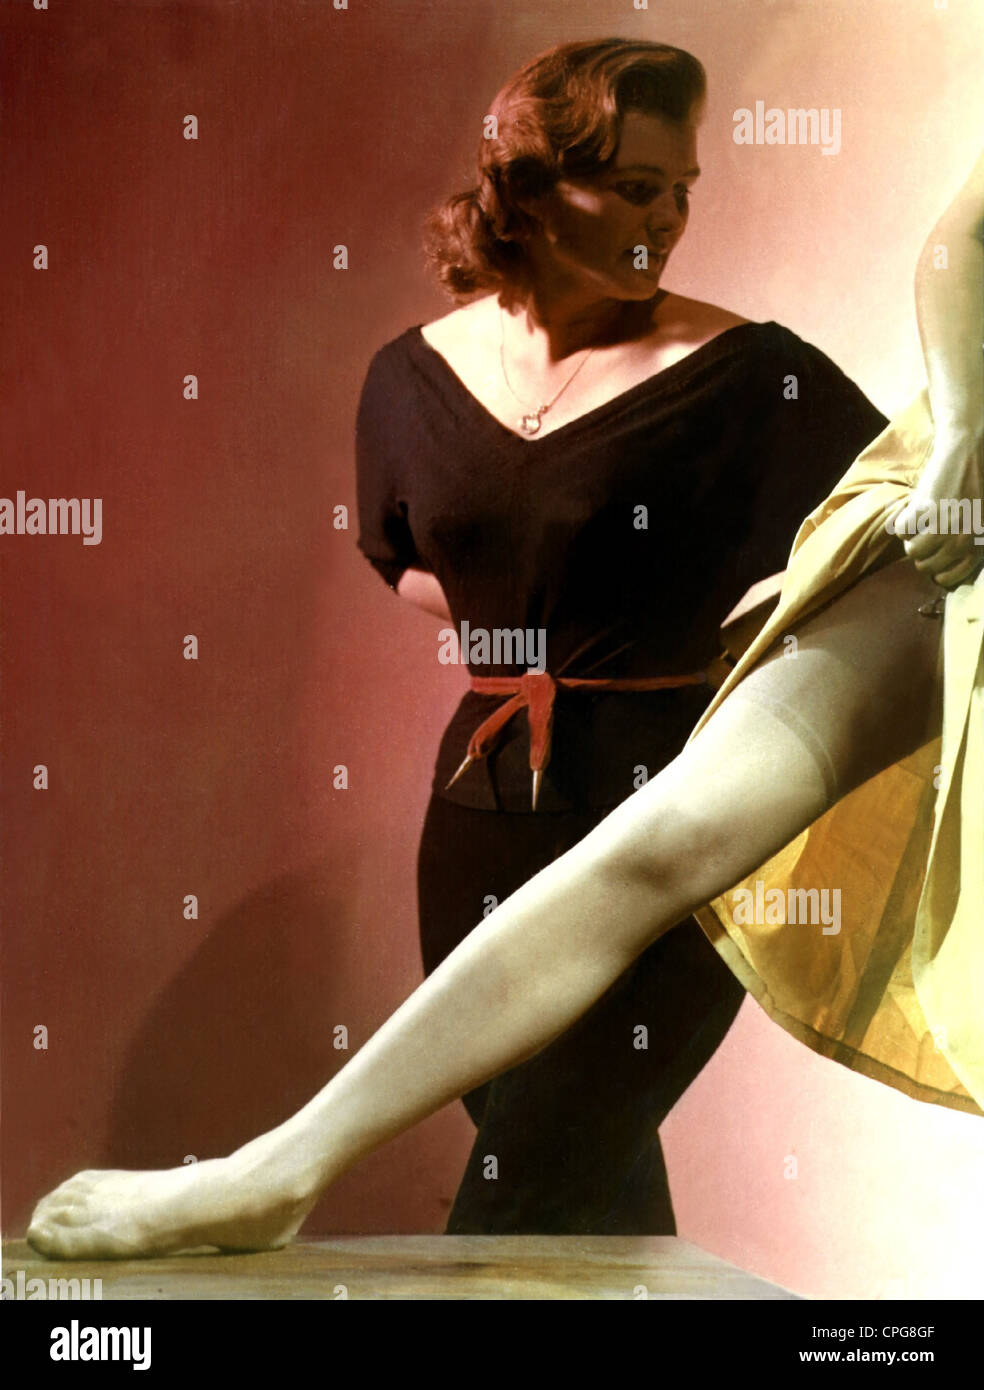 fashion, 1950s, ladies' fashion, underwear, stockings, Additional-Rights-Clearences-NA Stock Photo